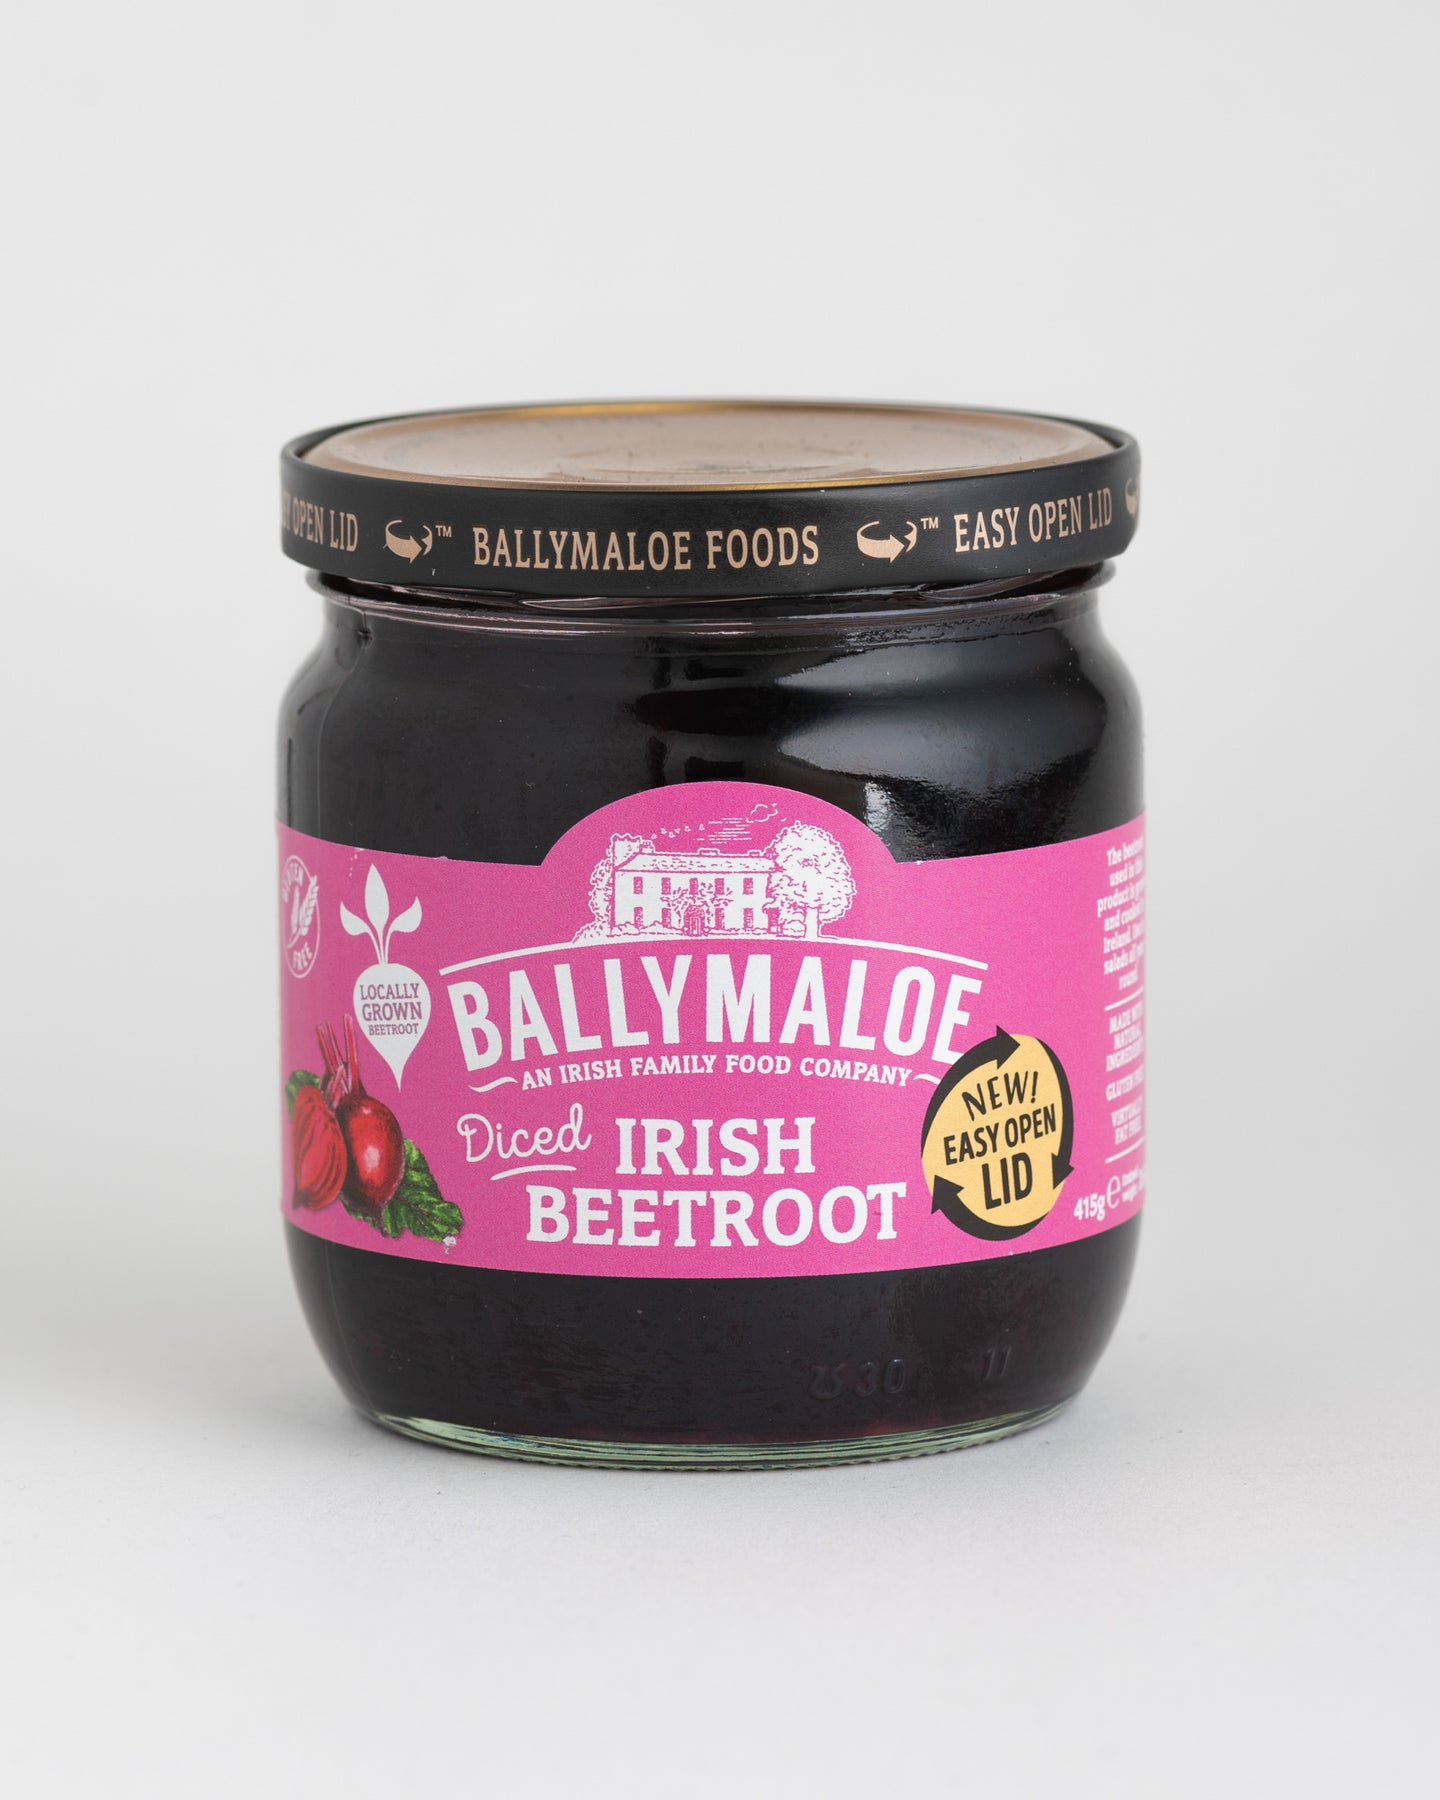 Ballymaloe - Diced Irish Beetroot